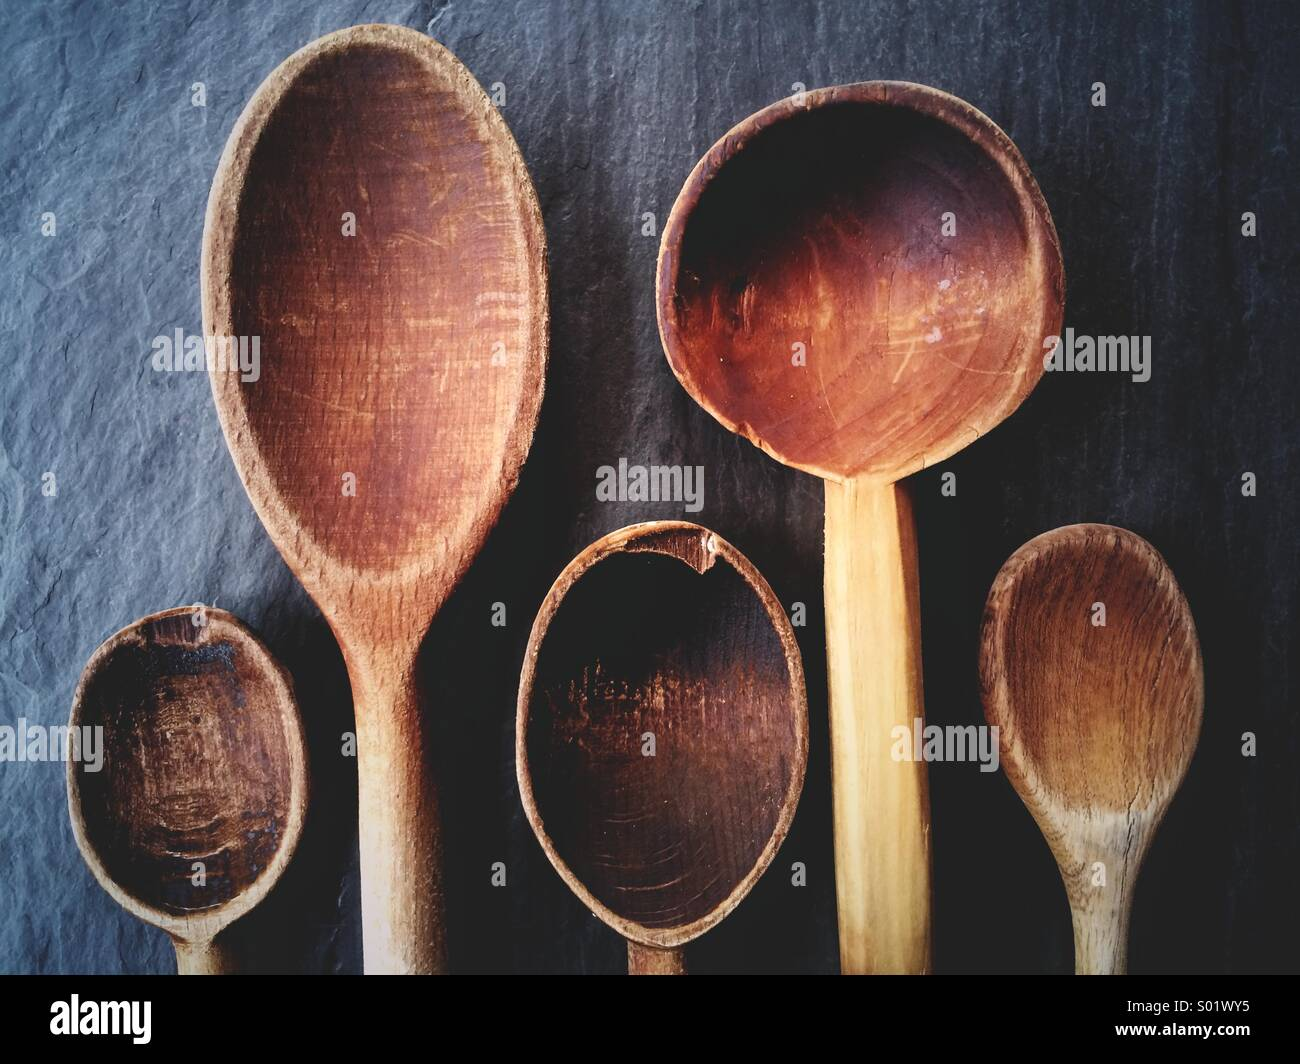 Beautiful old wooden spoons for cooking on a slate background. - Stock Image